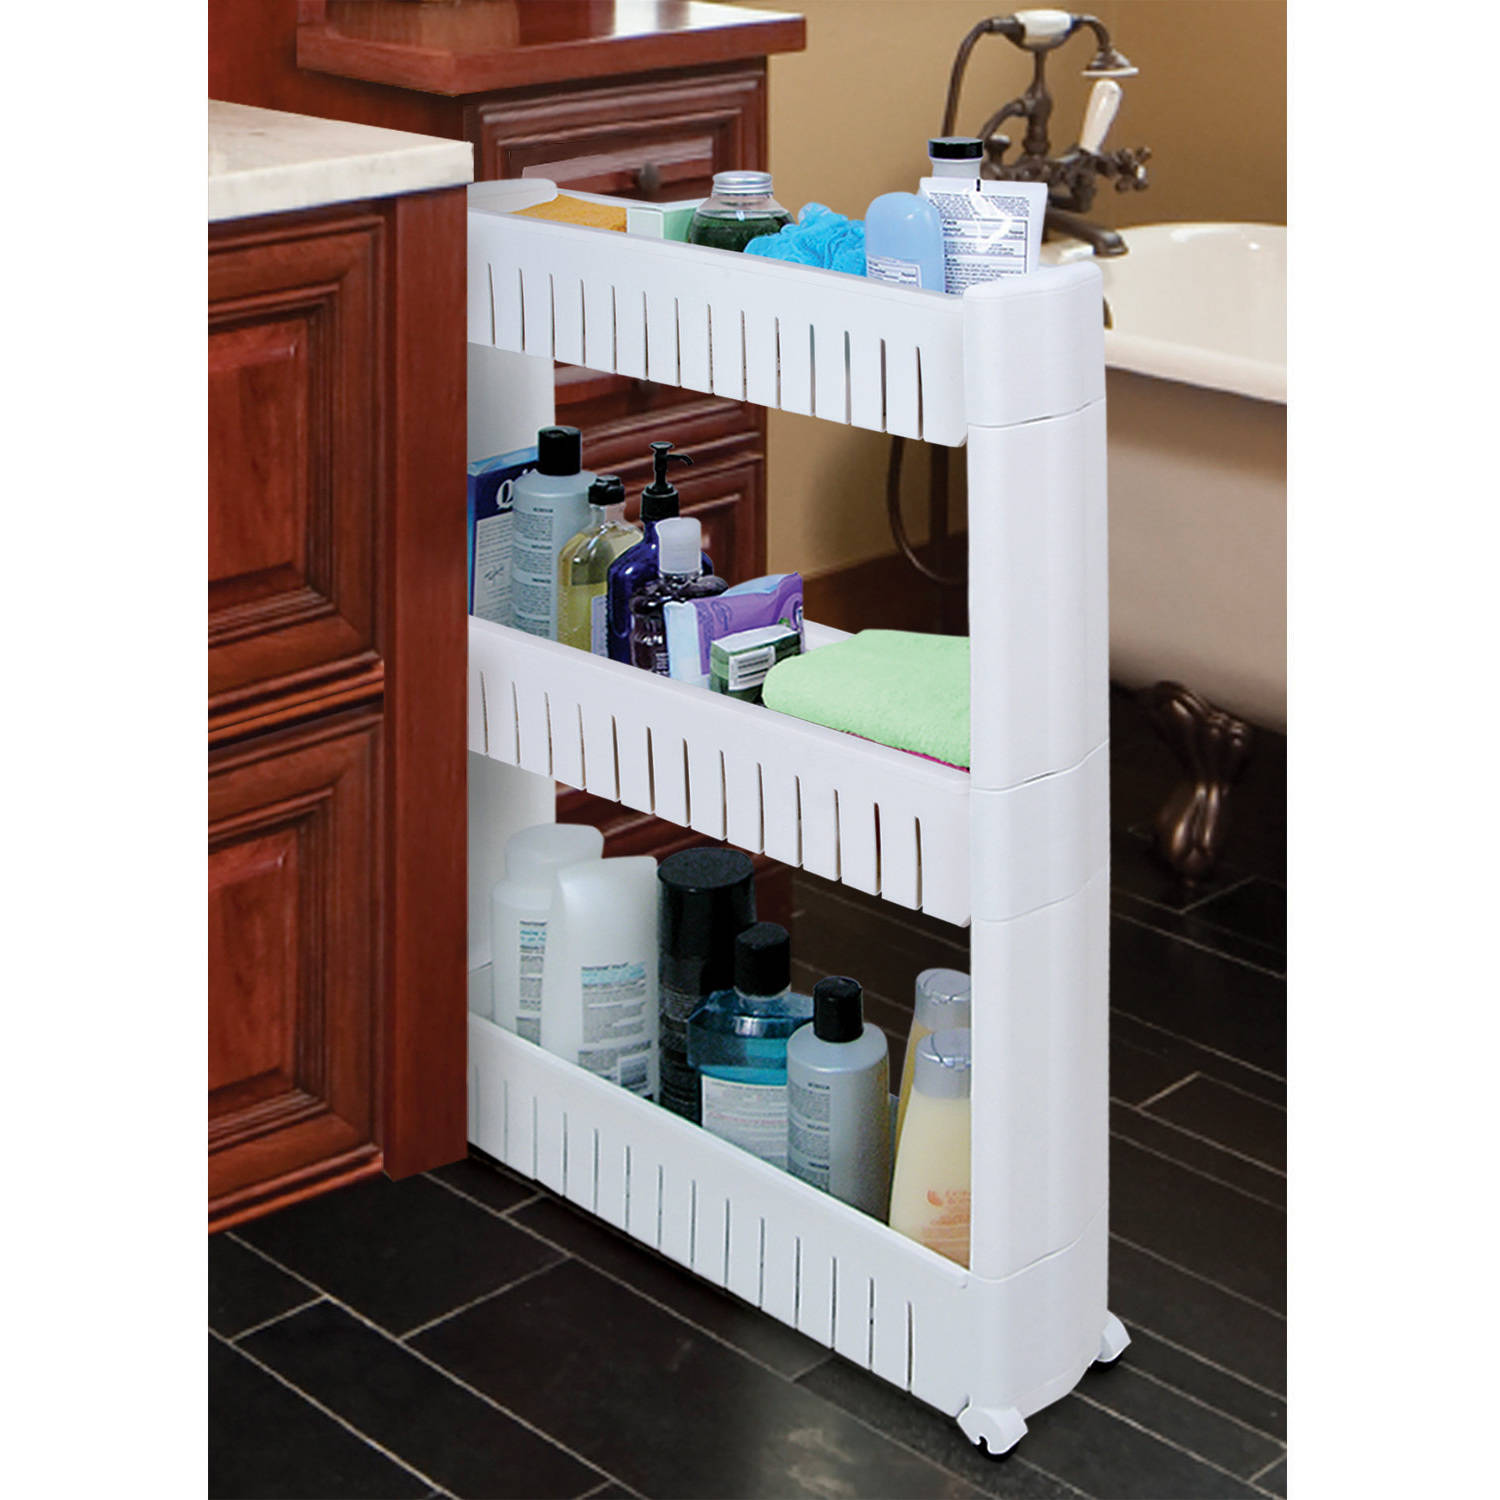 Ideaworks Slide-Out Storage Tower, White, JB6032